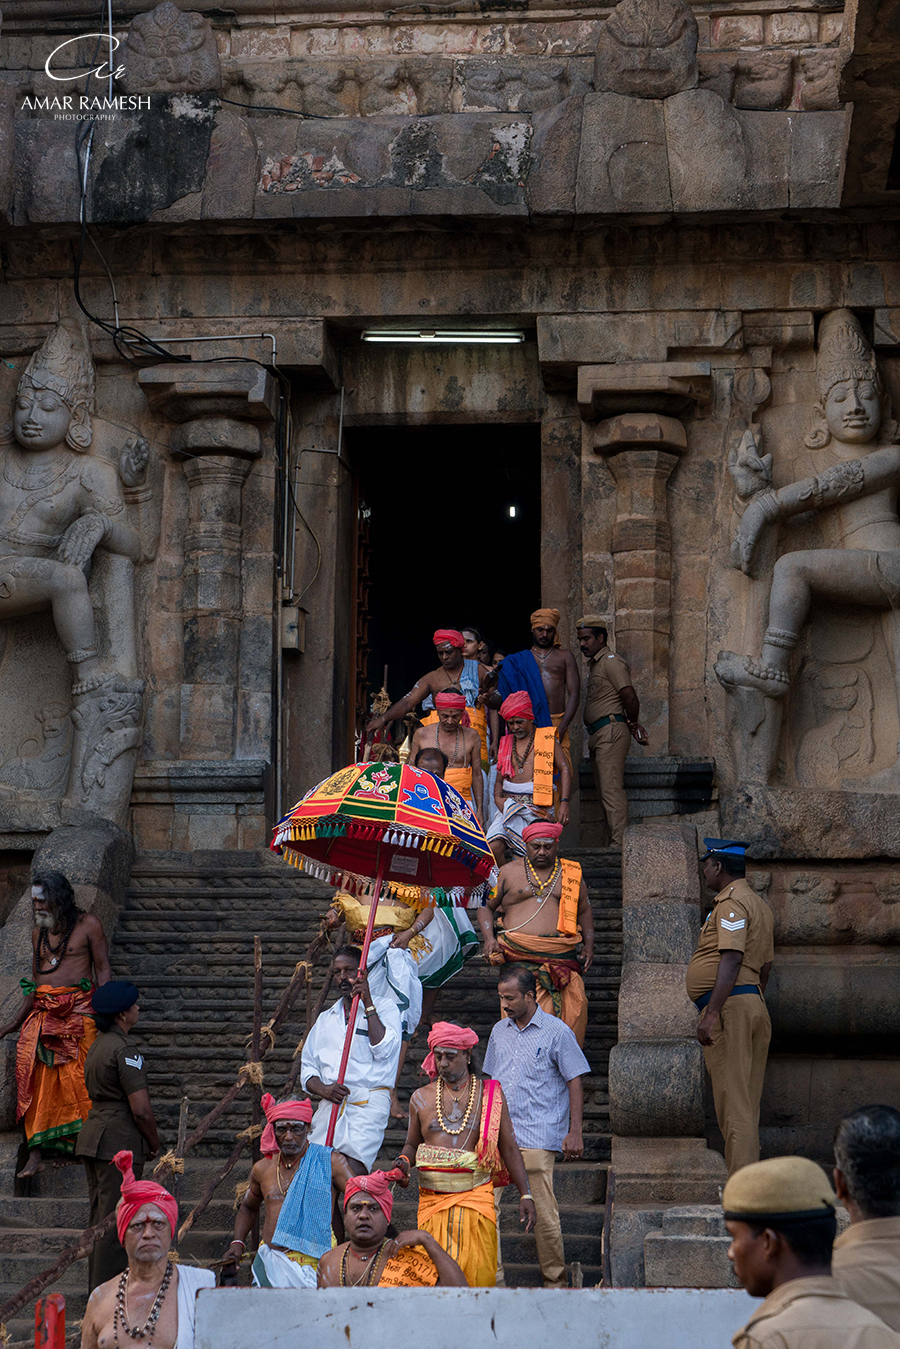 Gangaikonda-Cholapuram-Amarramesh-Traveller-Discover-Tamilnadu-Destination-wedding-photographer-India-77